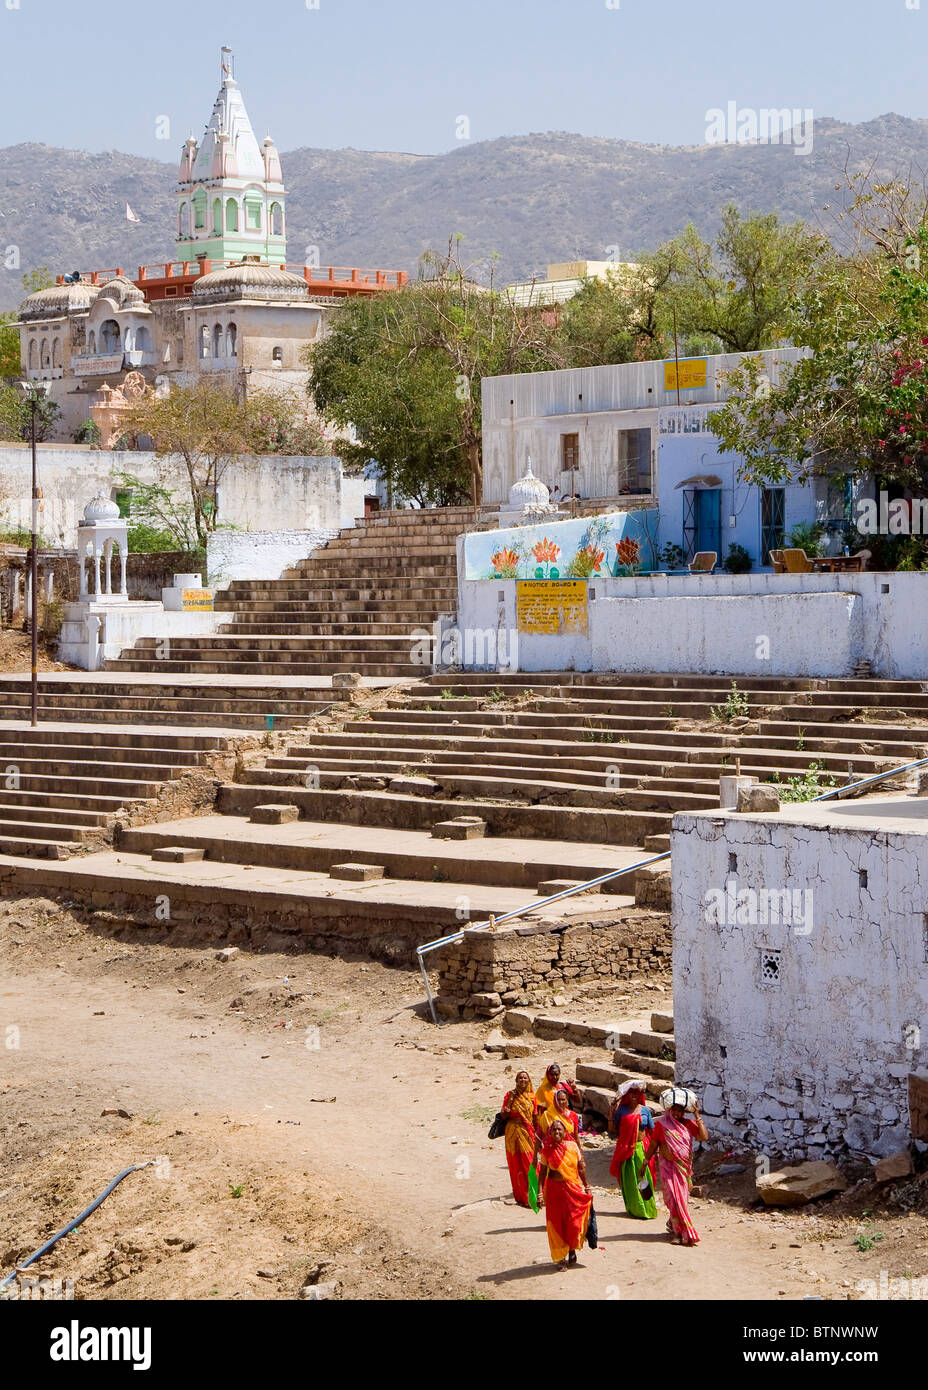 Ghats, Pushkar, Rajasthan, India - Stock Image